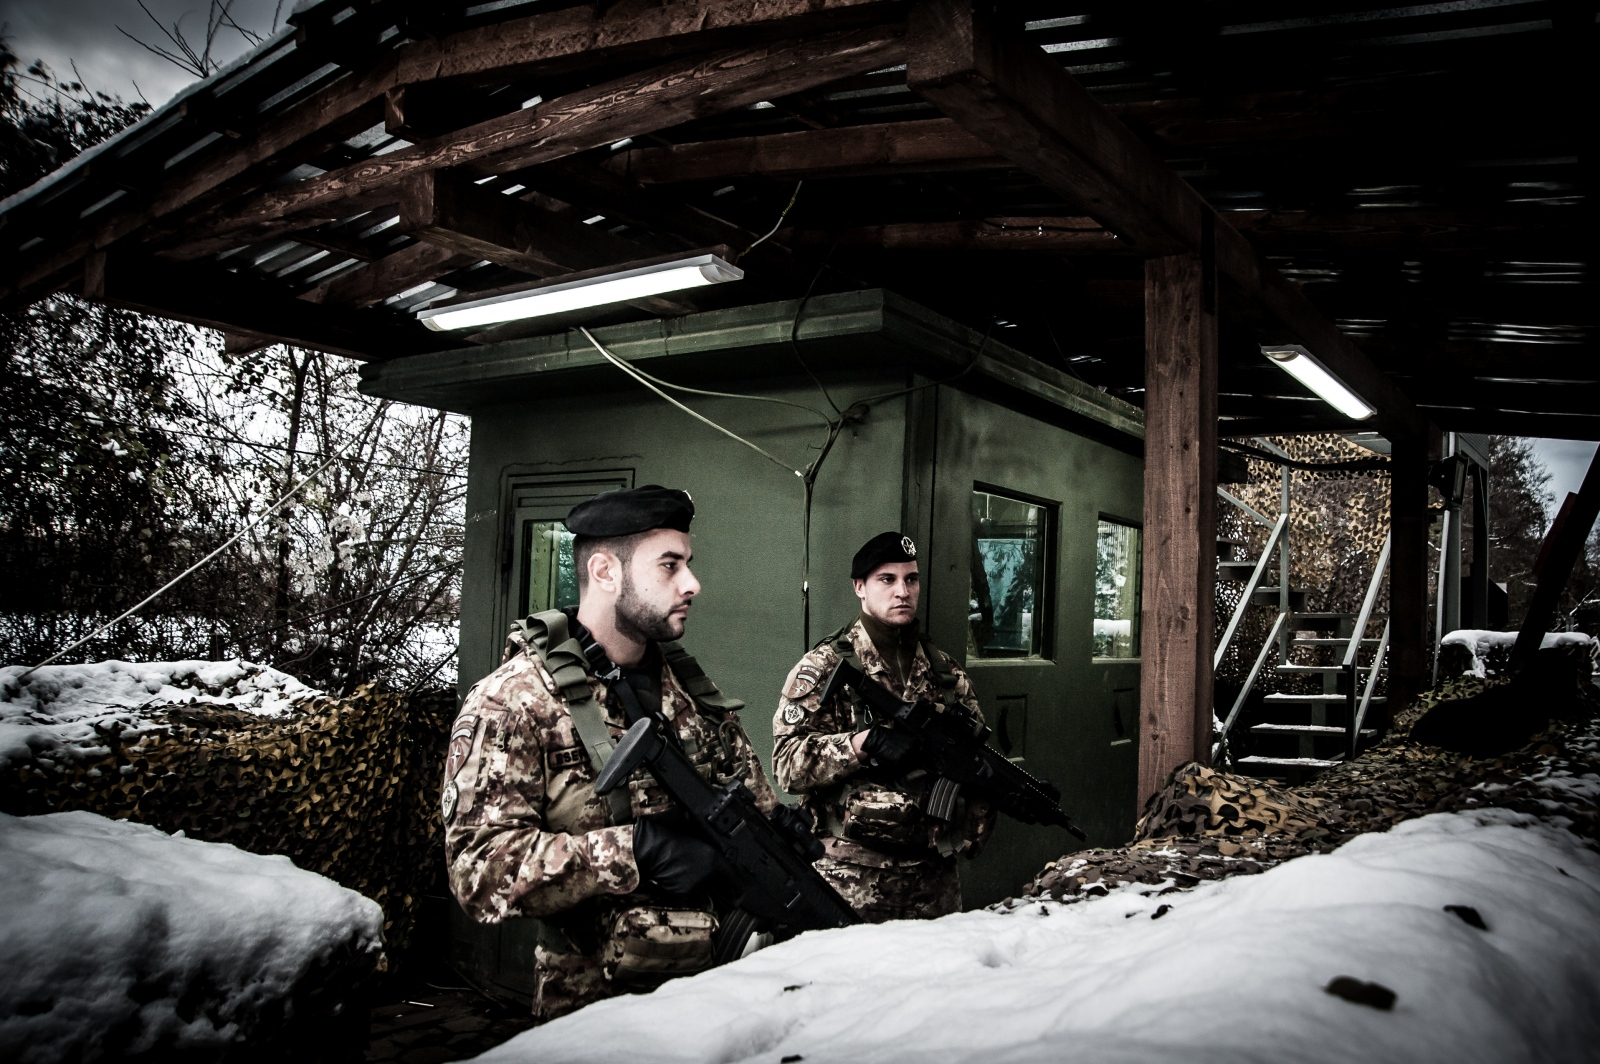 Two KFOR soldiers during the monitoring service at one of the checkpoints surrounding the monastery of Visoki Dečani. The service has an average duration of six hours, with six others in case of an intervention required. They have to patrol the area keeping the focus on the monastery's outdoor boundaries.